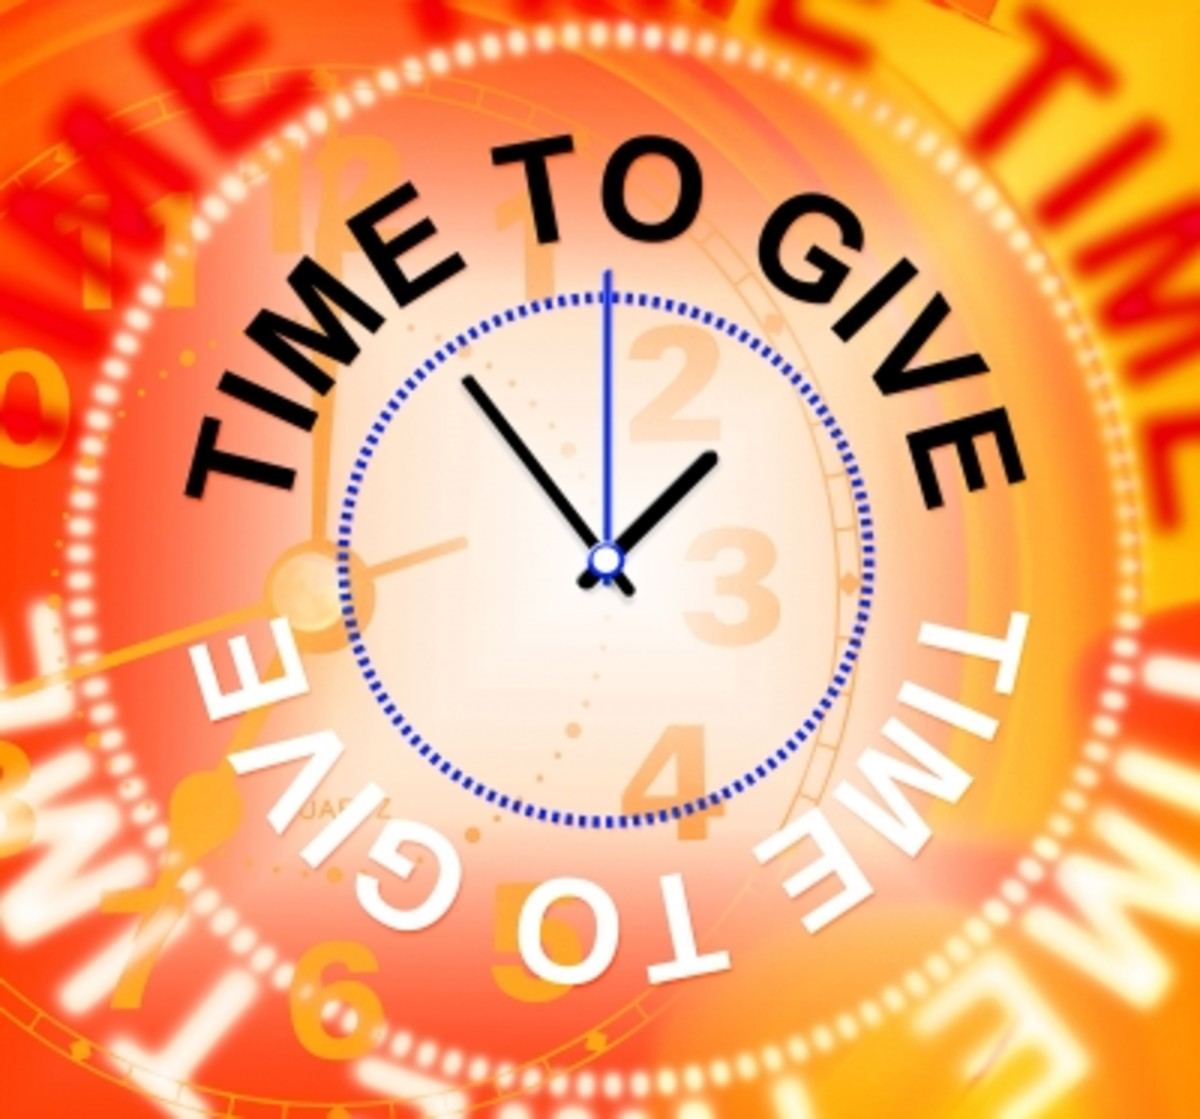 """Time To Give Means Gives Bestow And Donating"" by Stuart Miles"